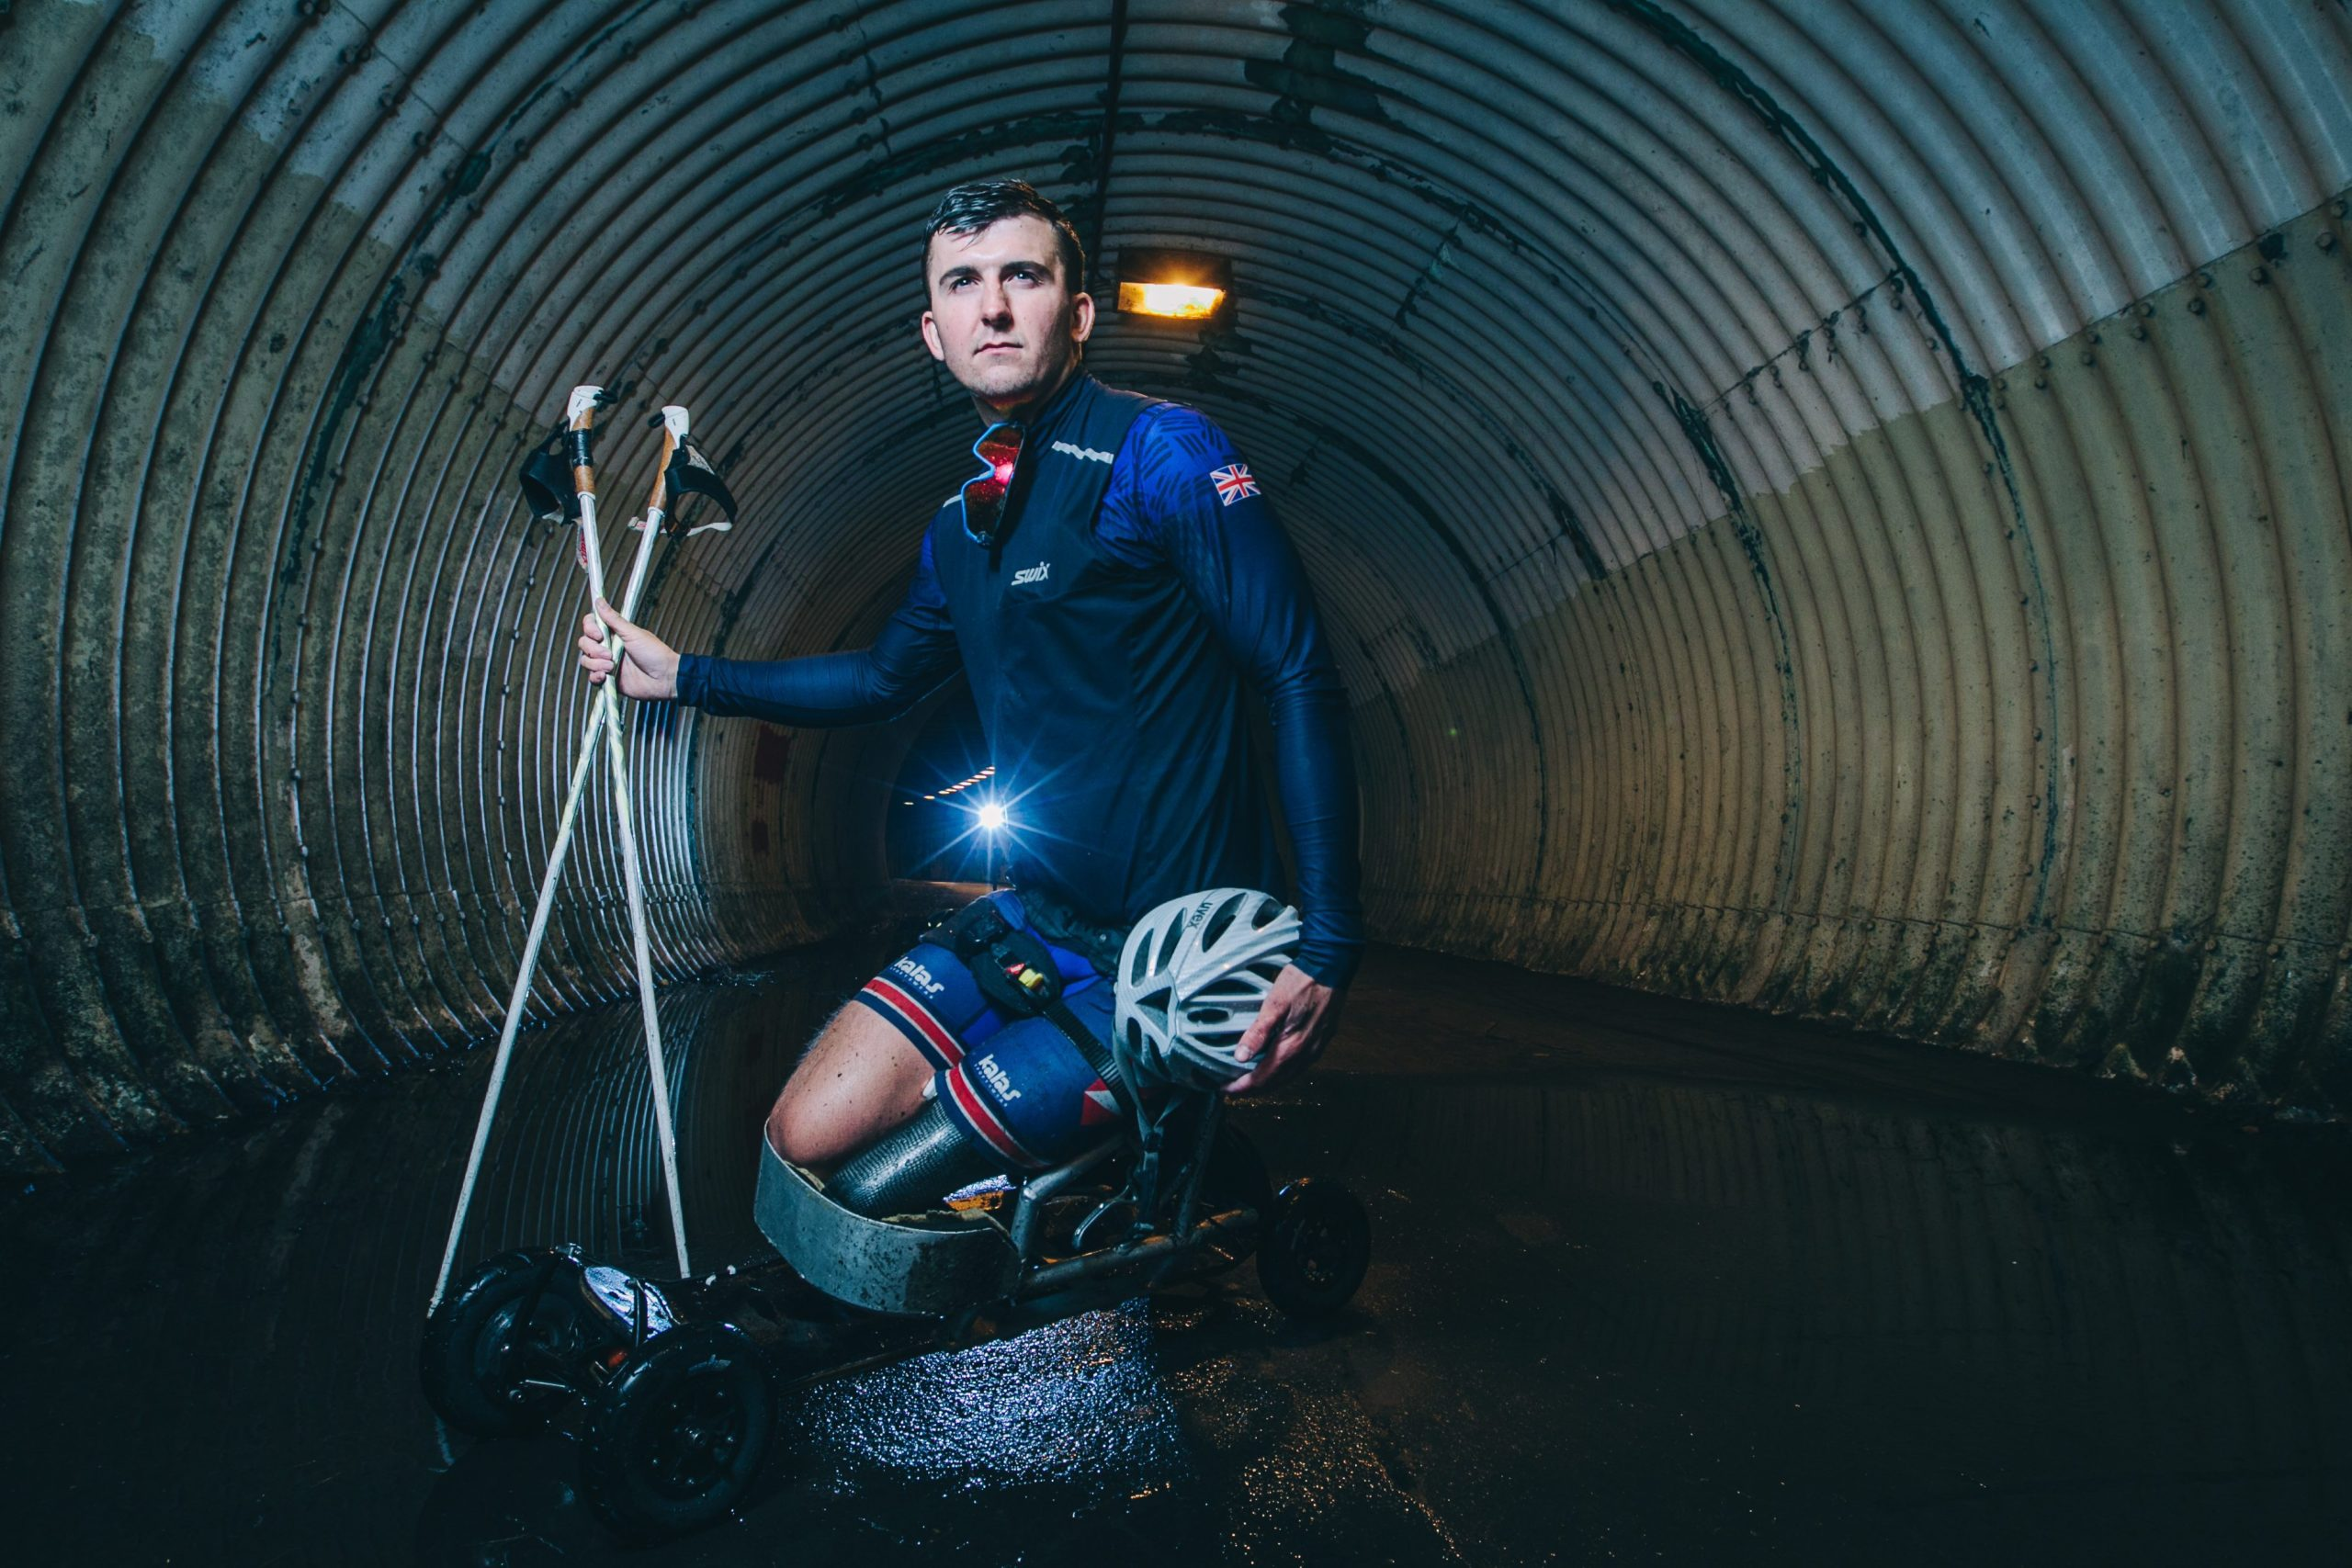 Callum Deboys pictured training in Alloway, Ayrshire, last week as he pursues Paralympics dream